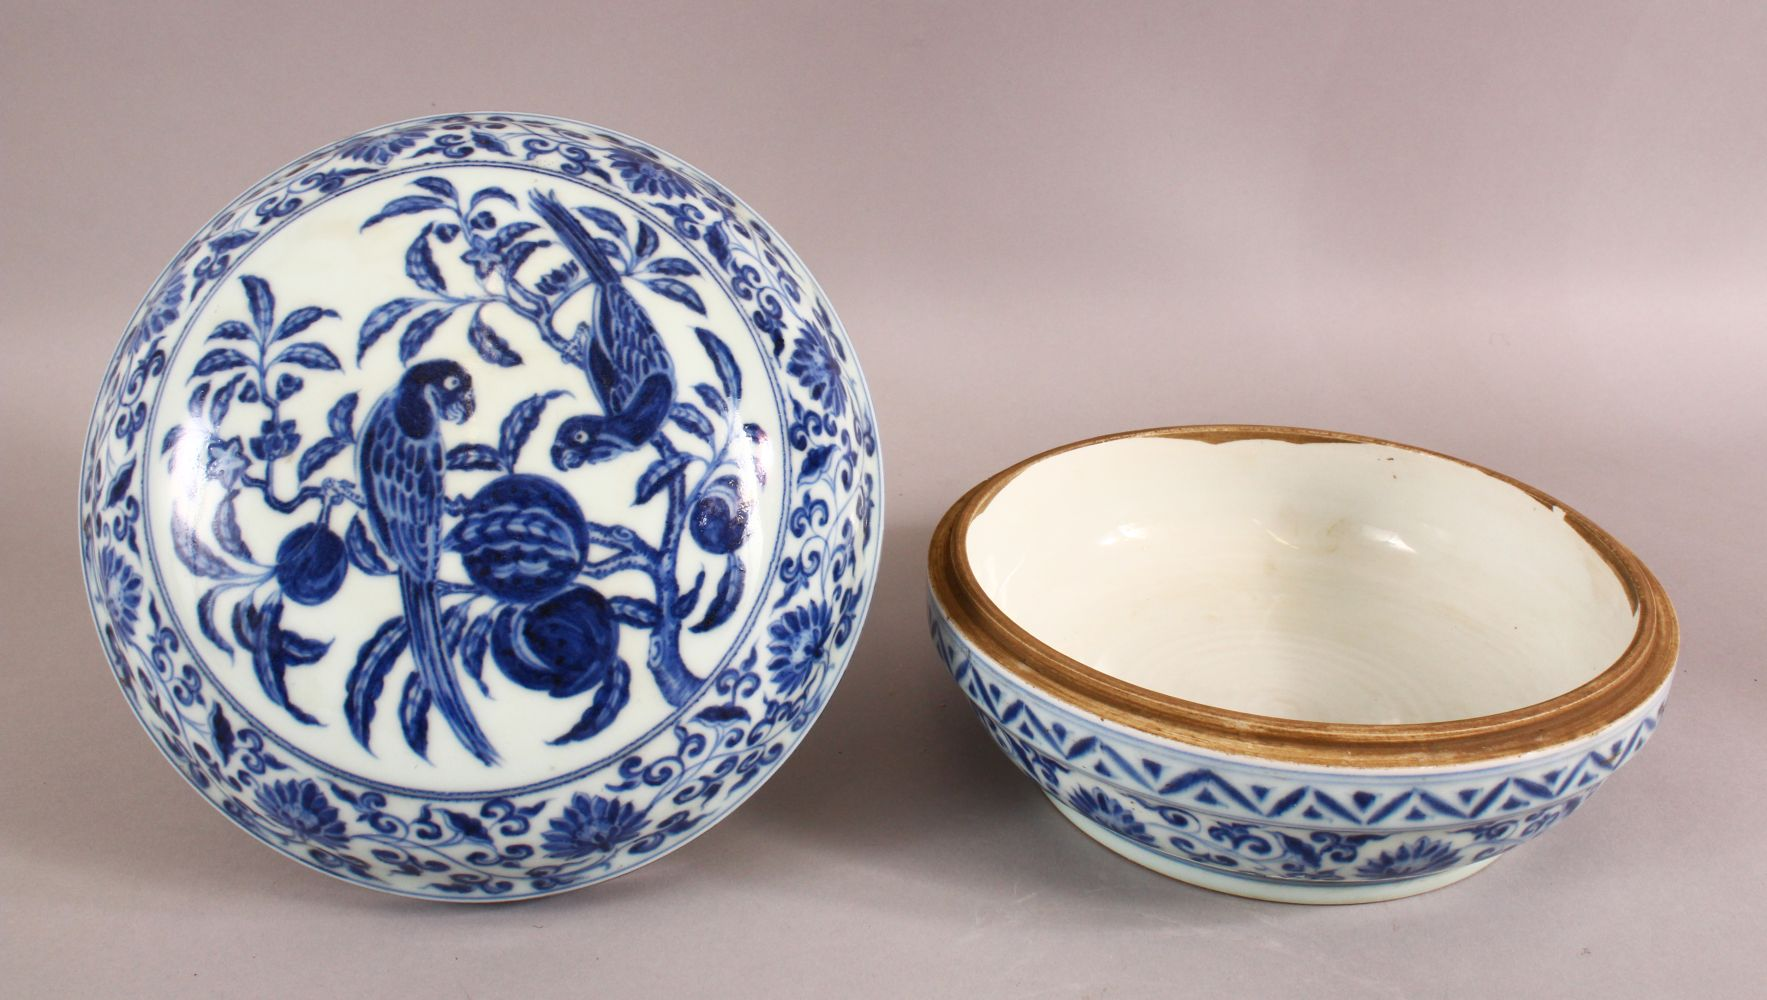 A GOOD CHINESE BLUE AND WHITE PORCELAIN BOX AND COVER, the cover decorated with birds on a peach - Image 2 of 5